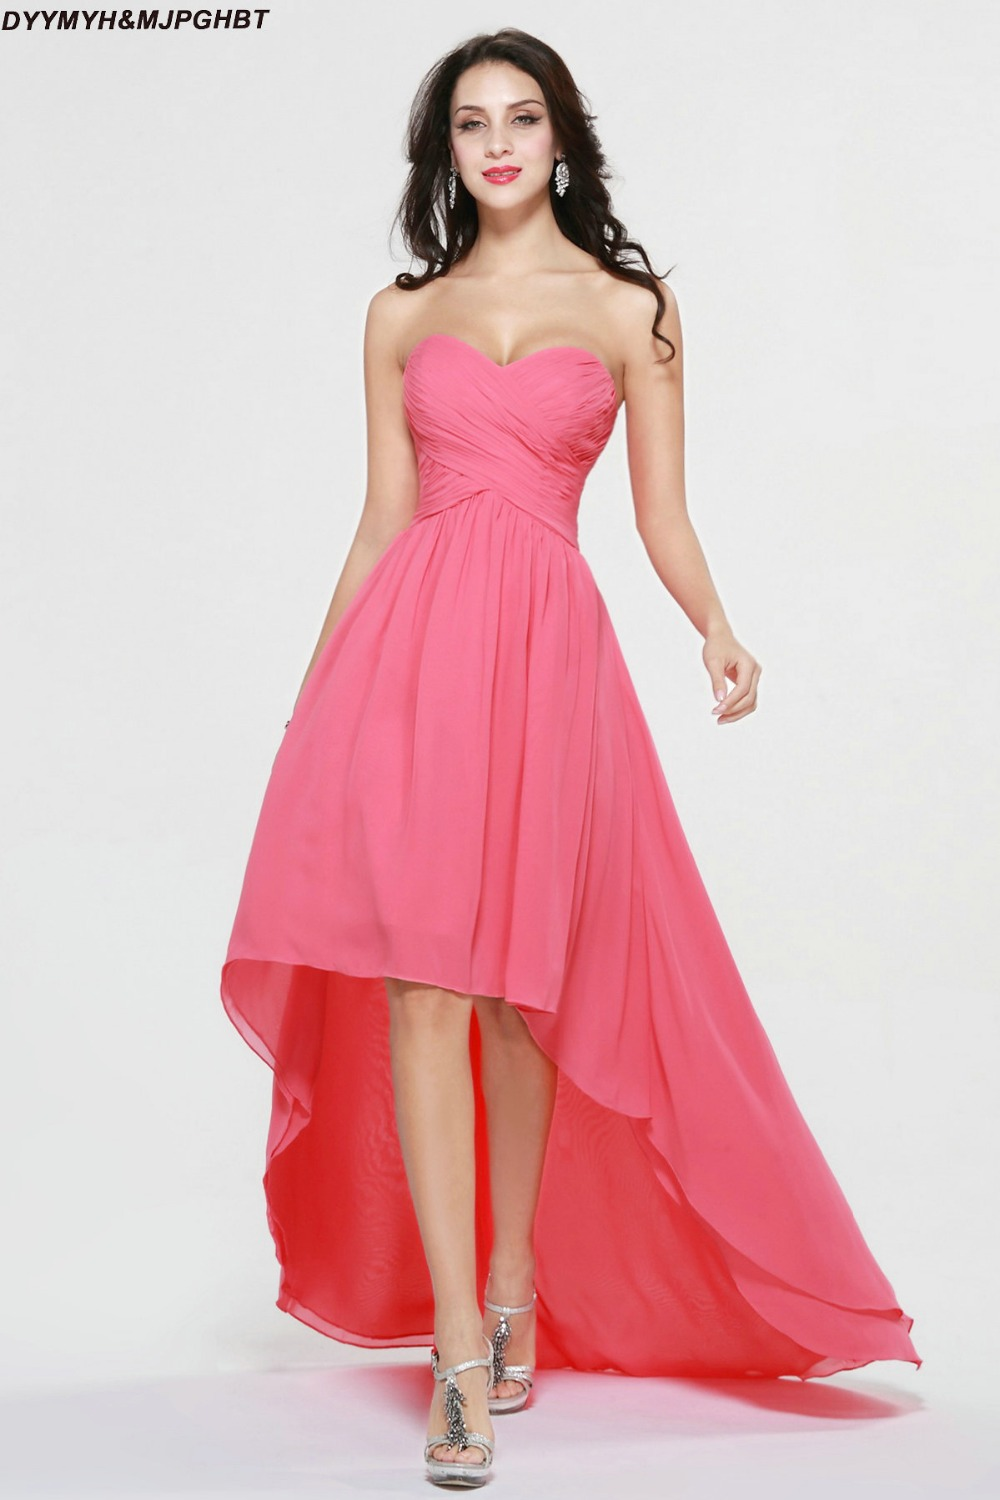 Online buy wholesale short hot pink bridesmaid dress from china fashionable short front and long back sweetheart pleat top asymmetrical hot pink bridesmaid dresseschina ombrellifo Images